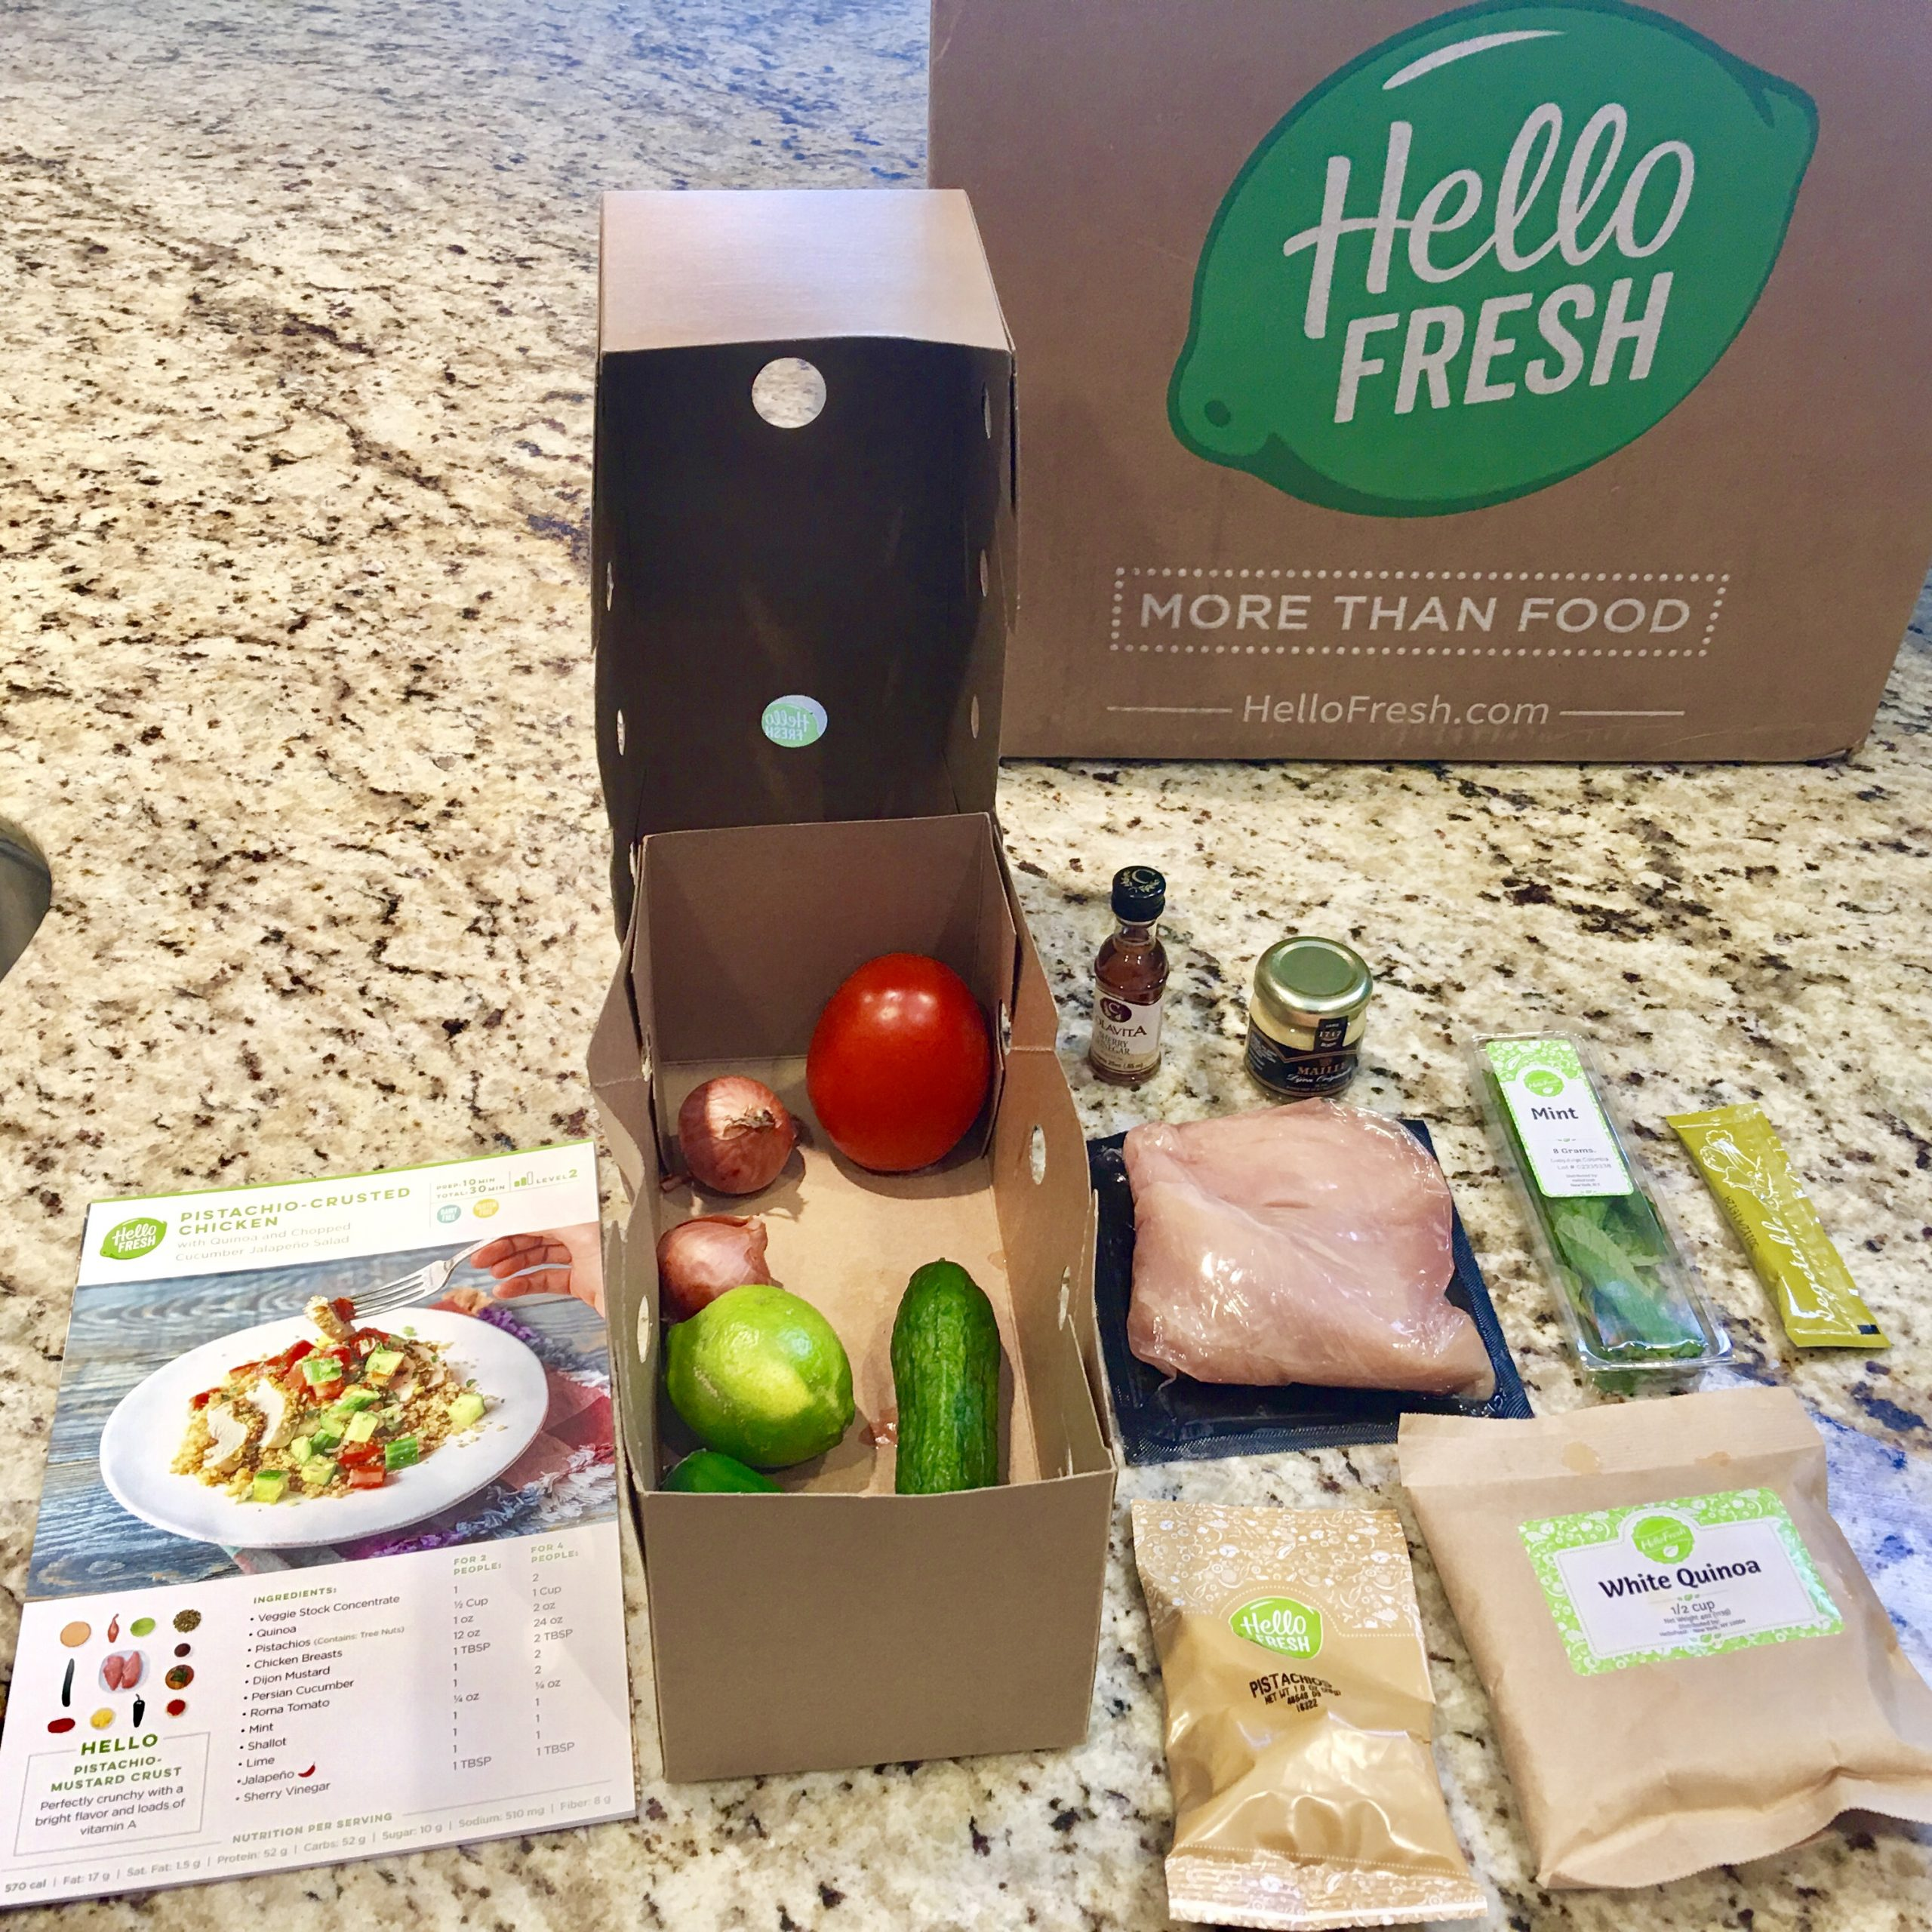 Colors And Sizes Hellofresh Meal Kit Delivery Service